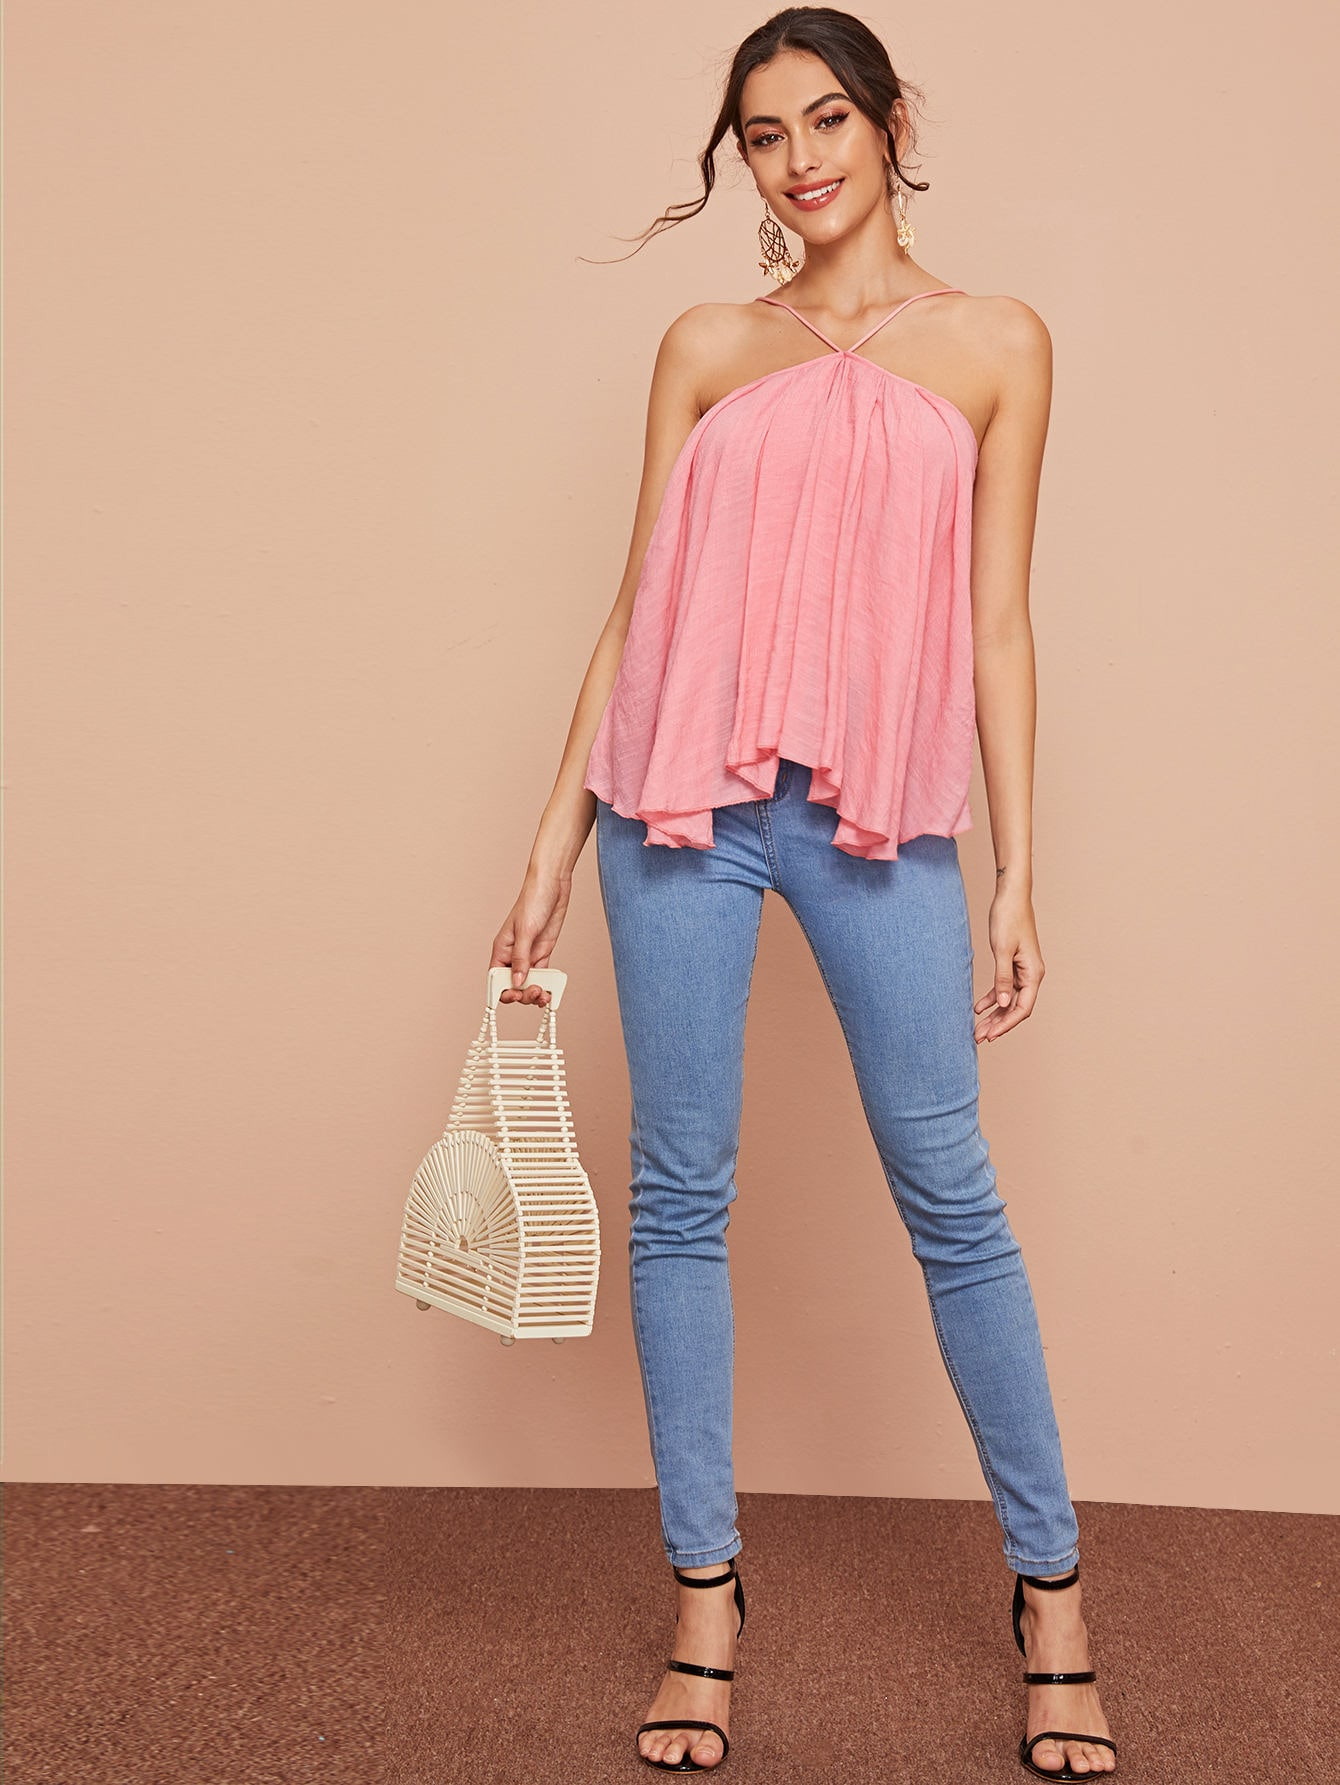 Lace Up Backless Ruffle Trim Top